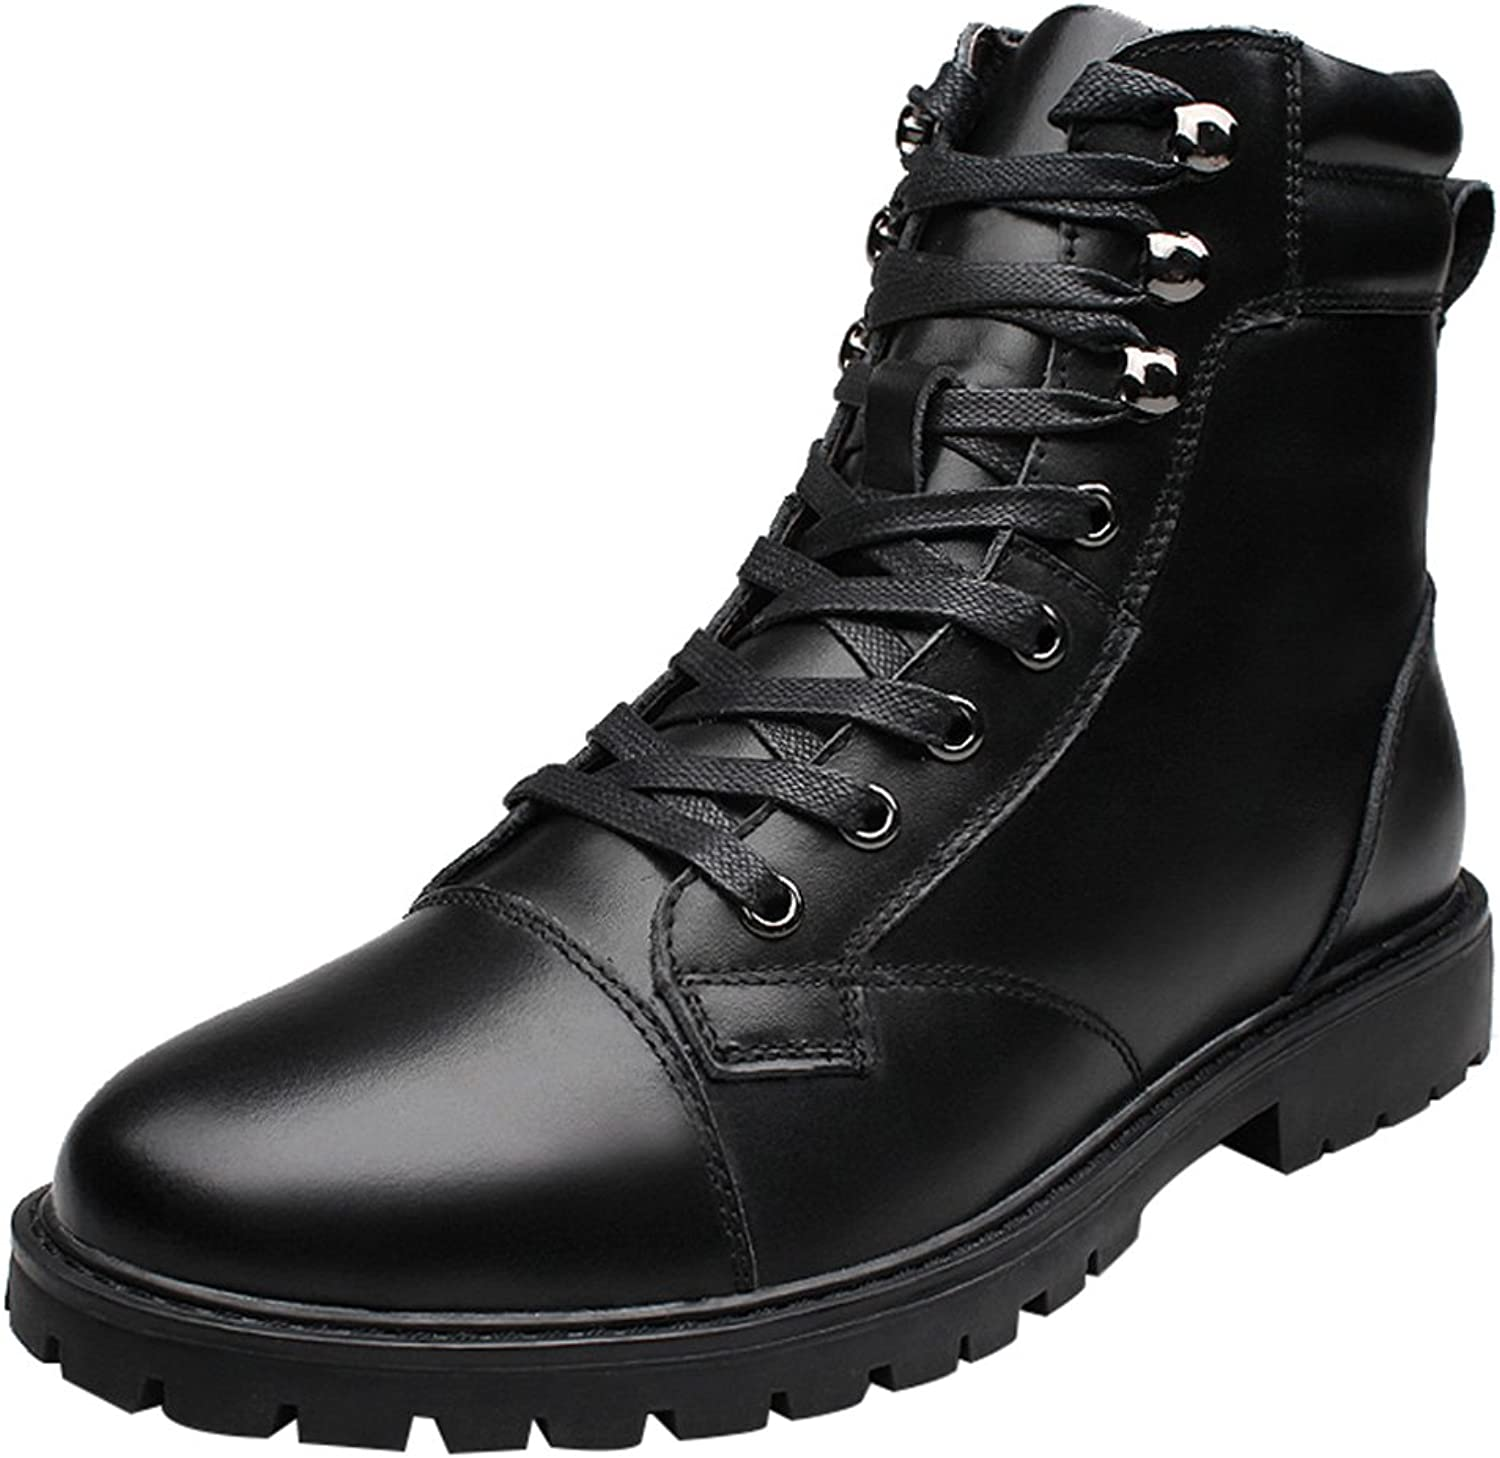 CFP D13098 Mens Ankle Boot Stylish Casual Leather High-top Warm Trip Working